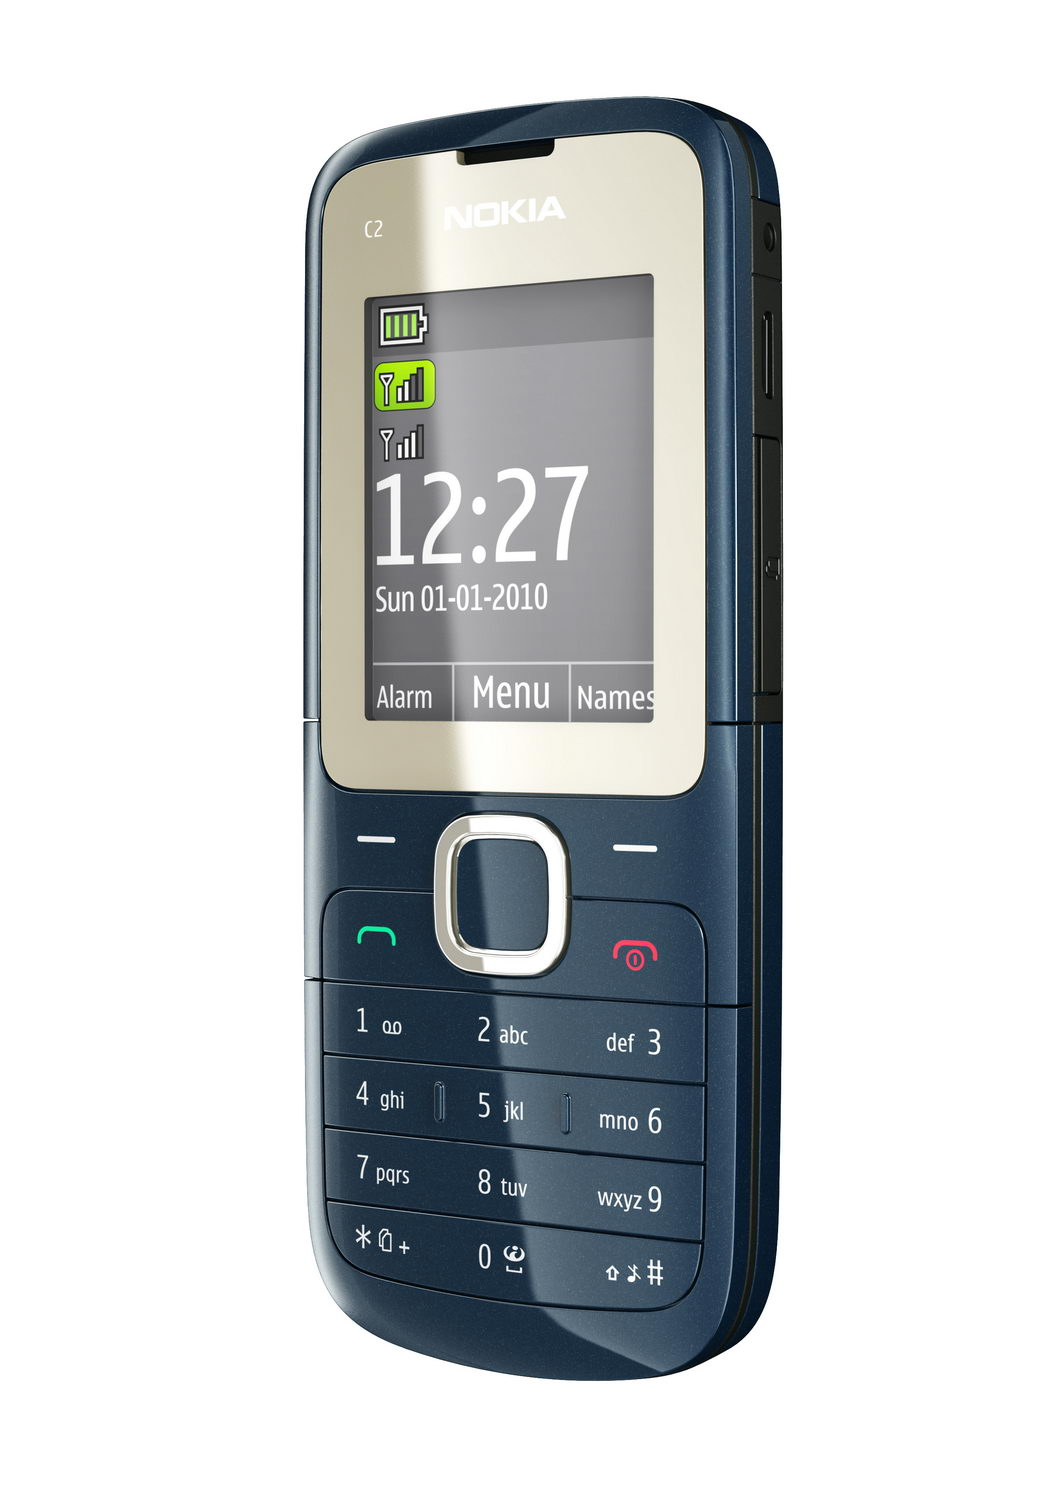 download twitter for nokia c2-00